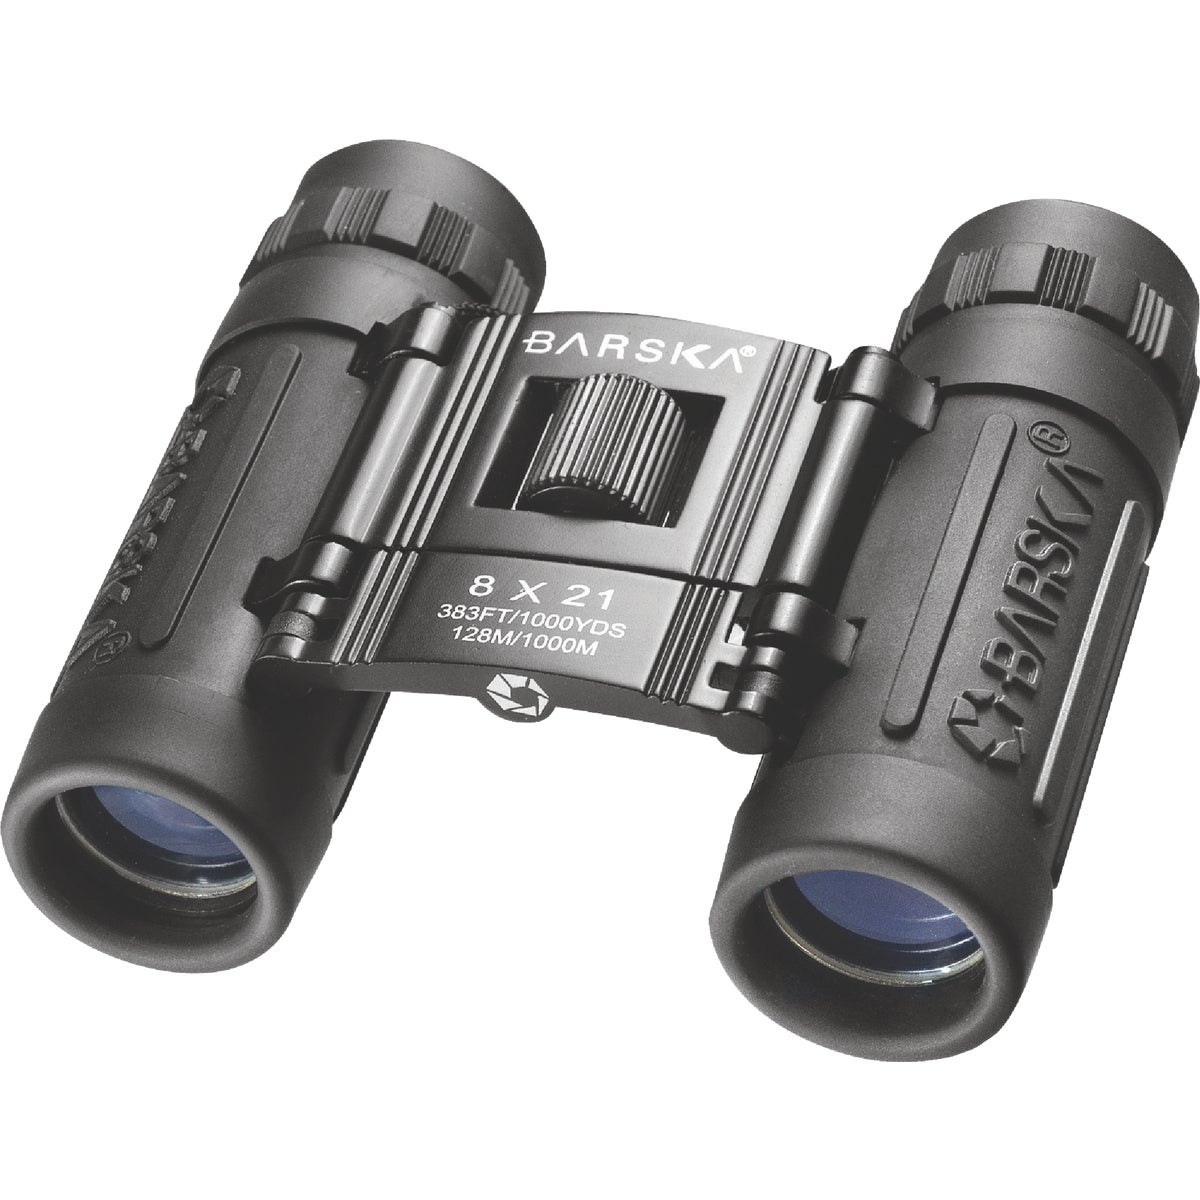 8X21 LUCID BINOCULARS - AB10109 by Barska Optics